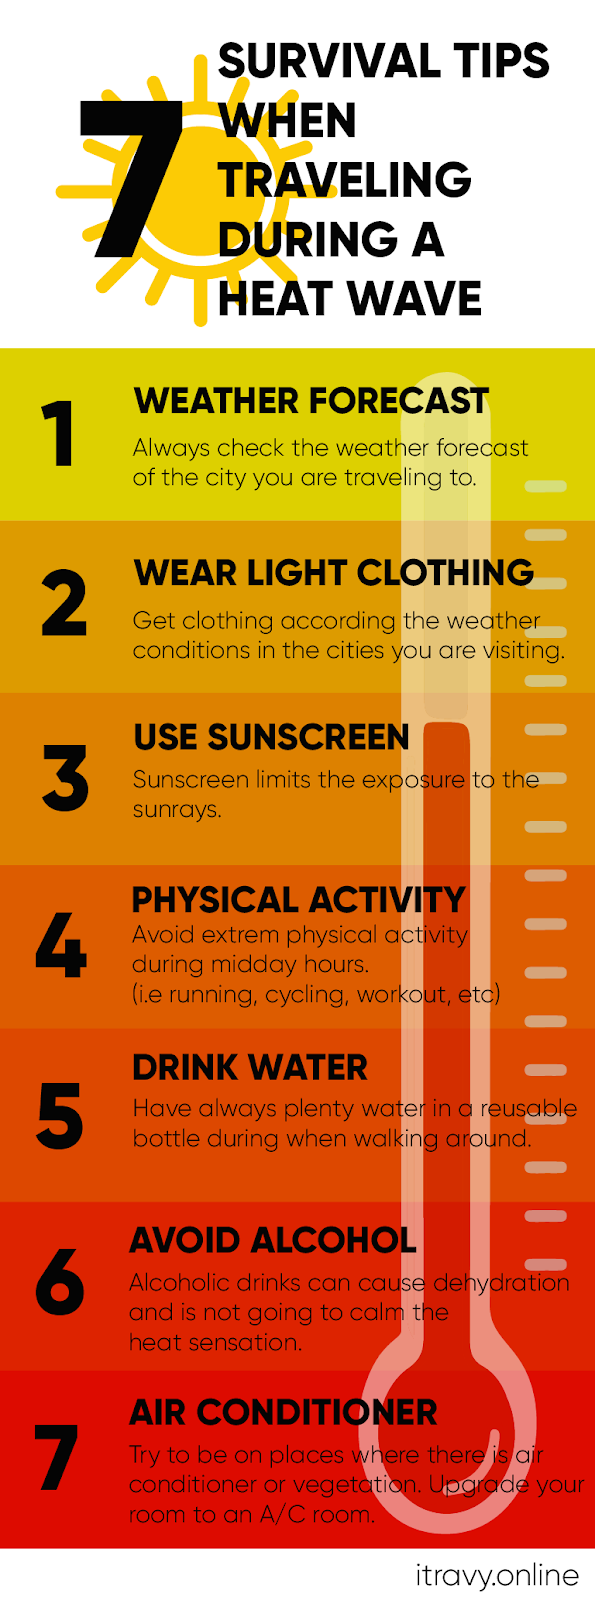 7 Survival Tips when Traveling During a Heat Wave